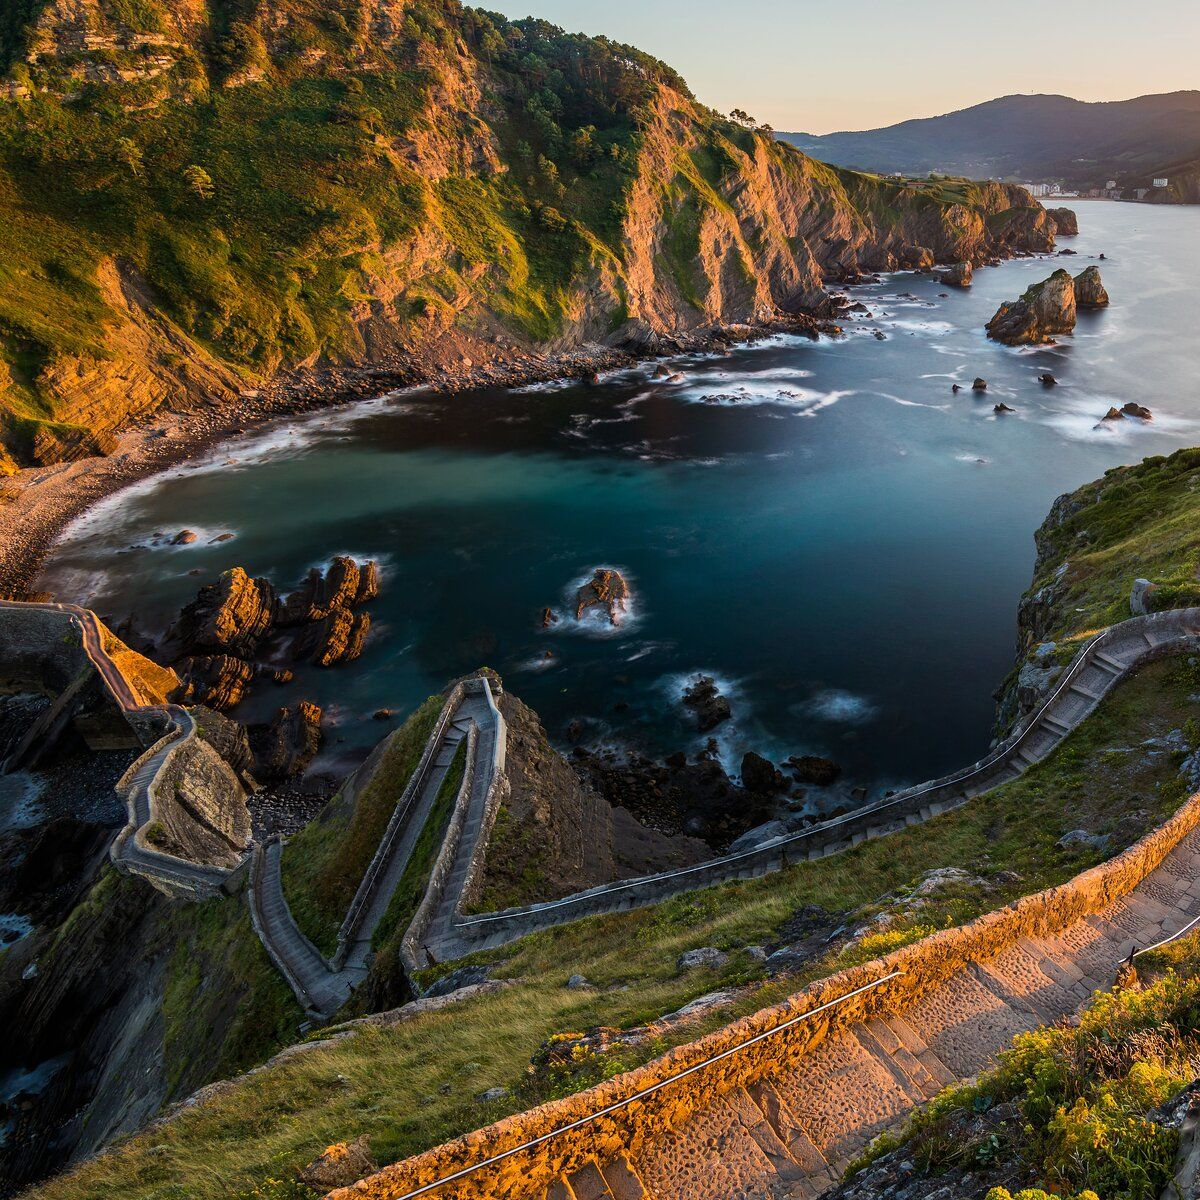 20 Hottest Vacation Destinations To Visit In 2020 According To Airbnb San Juan De Gaztelugatxe Vacation Destinations Basque Country